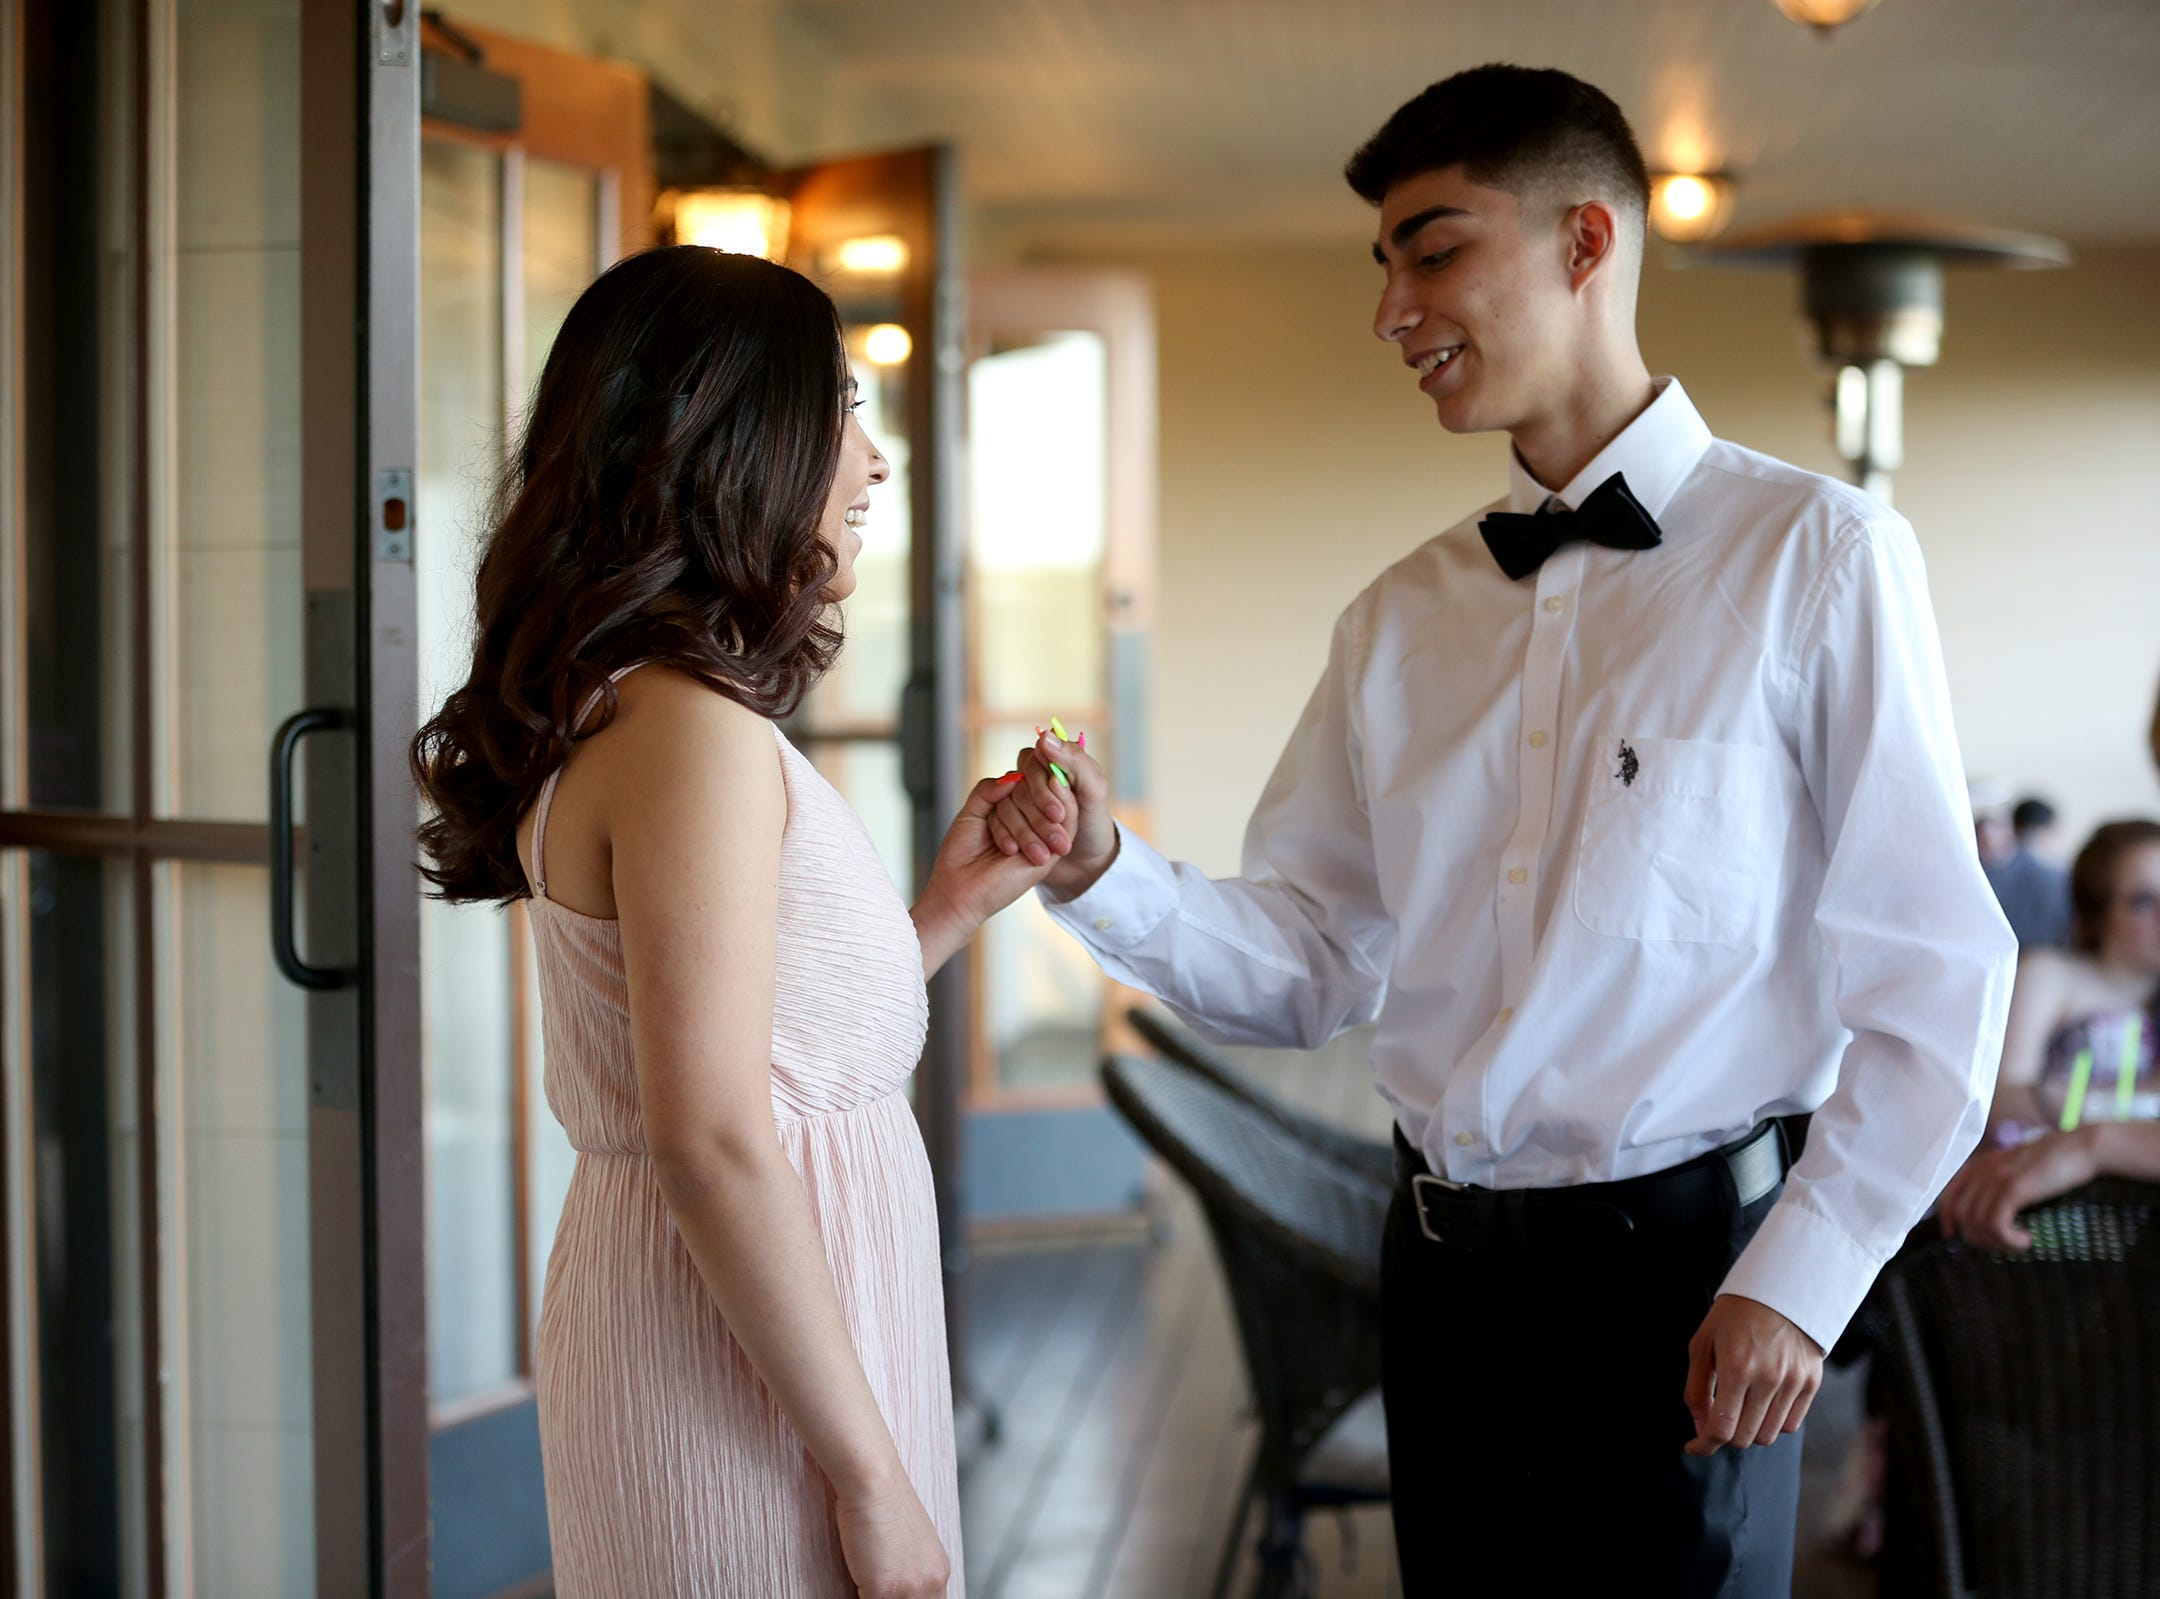 Students talk during the Sprague High School prom at Zenith Vineyard in West Salem on May 10, 2019.